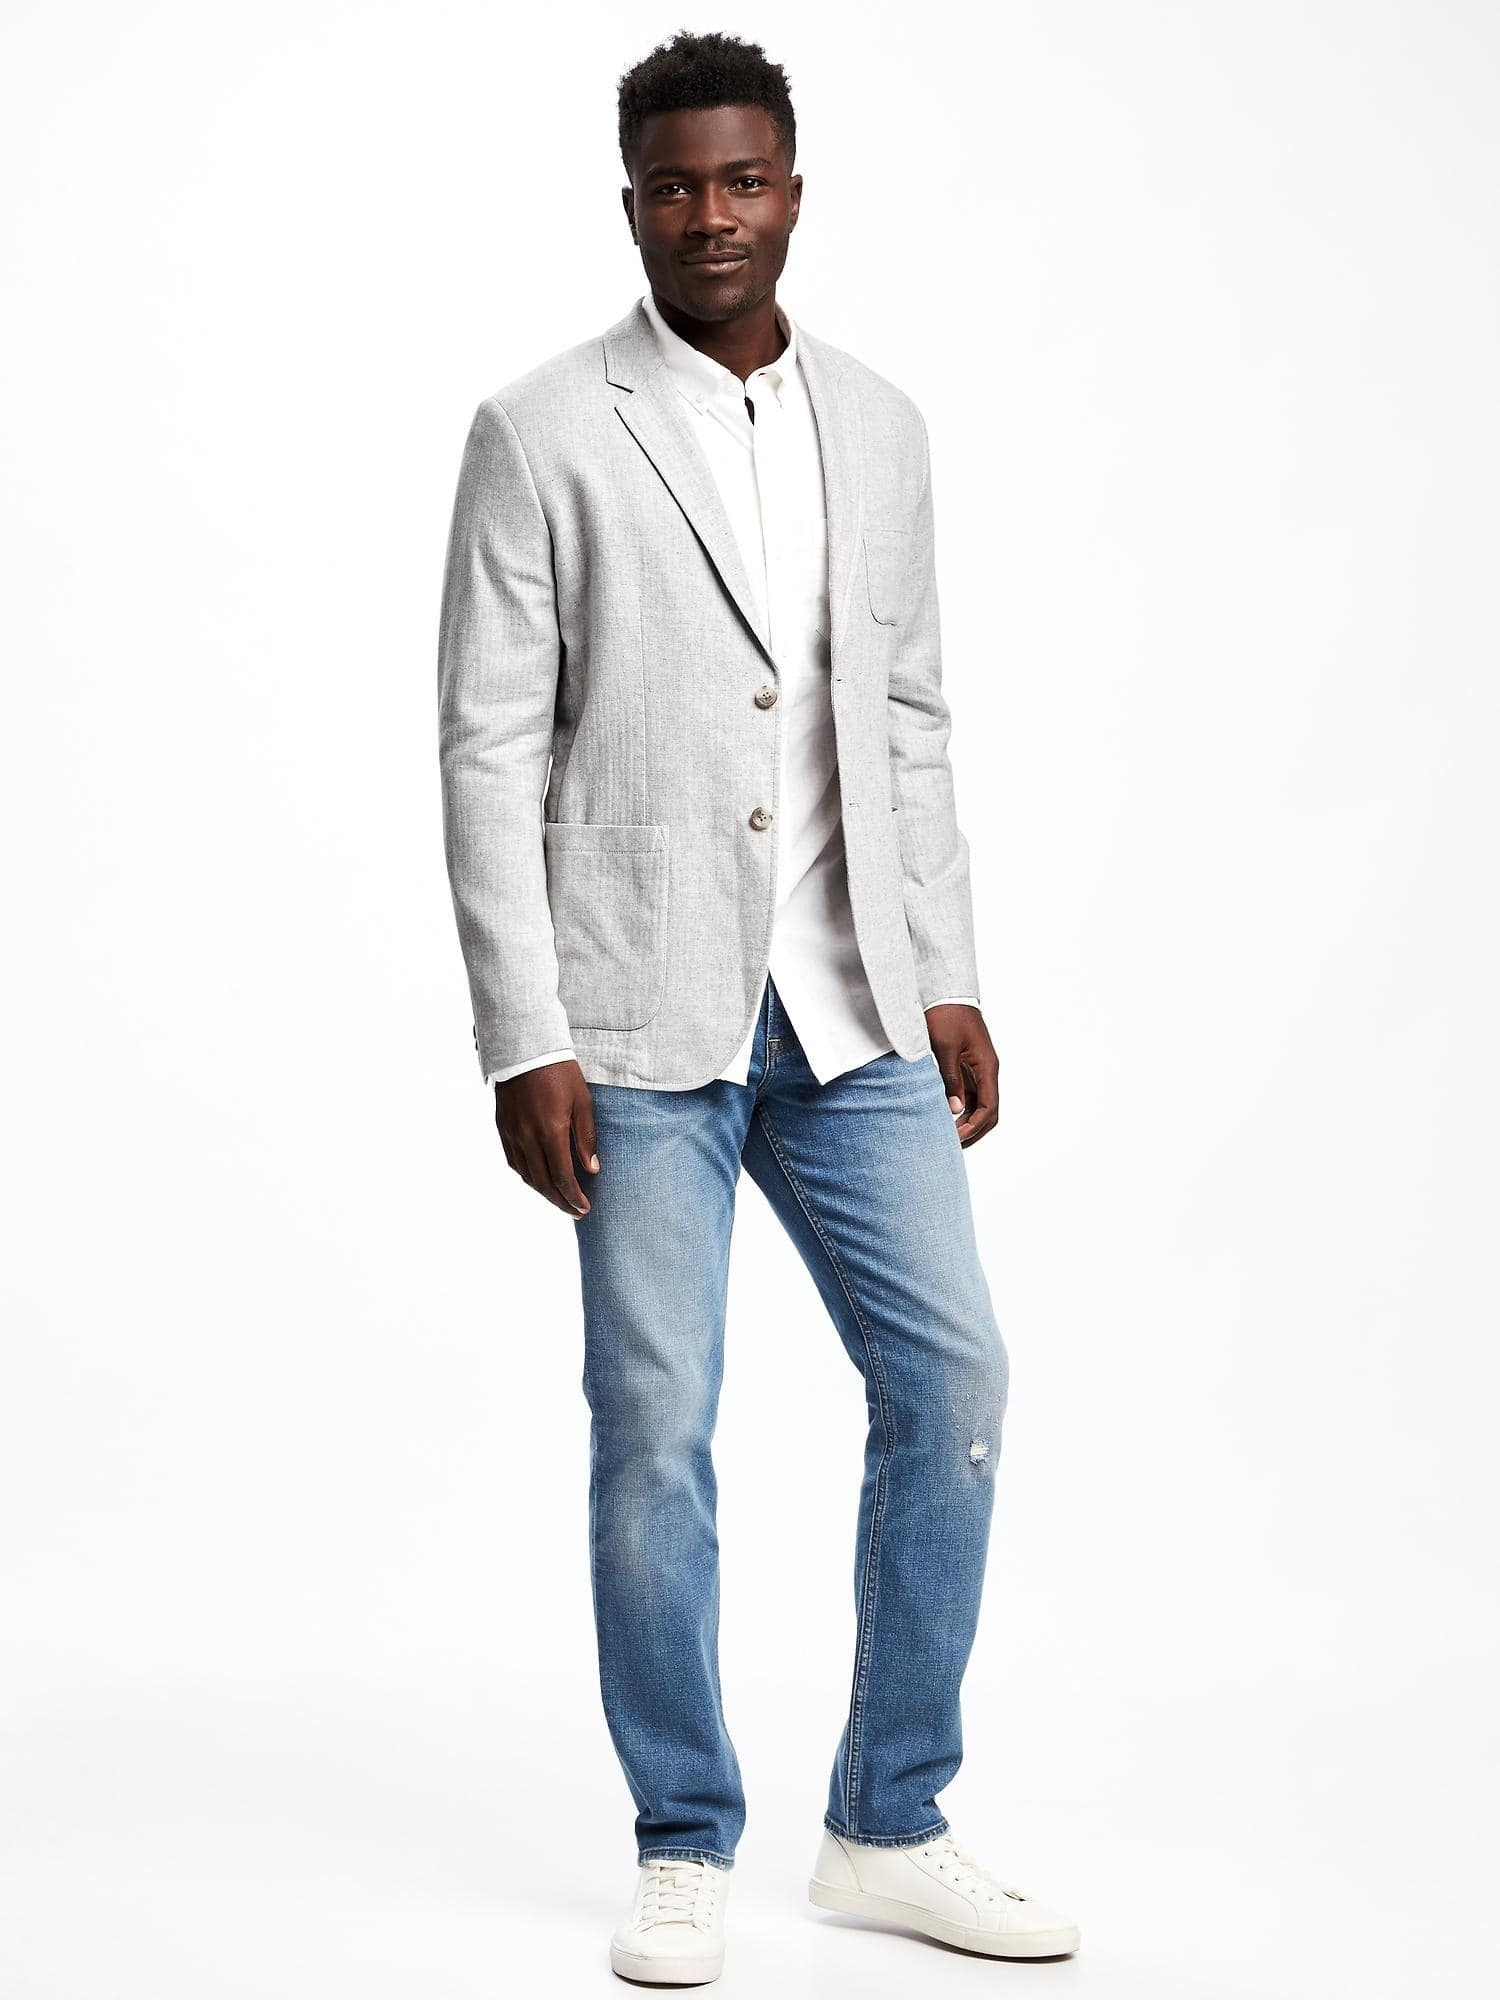 6916d2a0561ac How To Wear Light Blue Jeans With a Grey Blazer For Men (10 looks ...